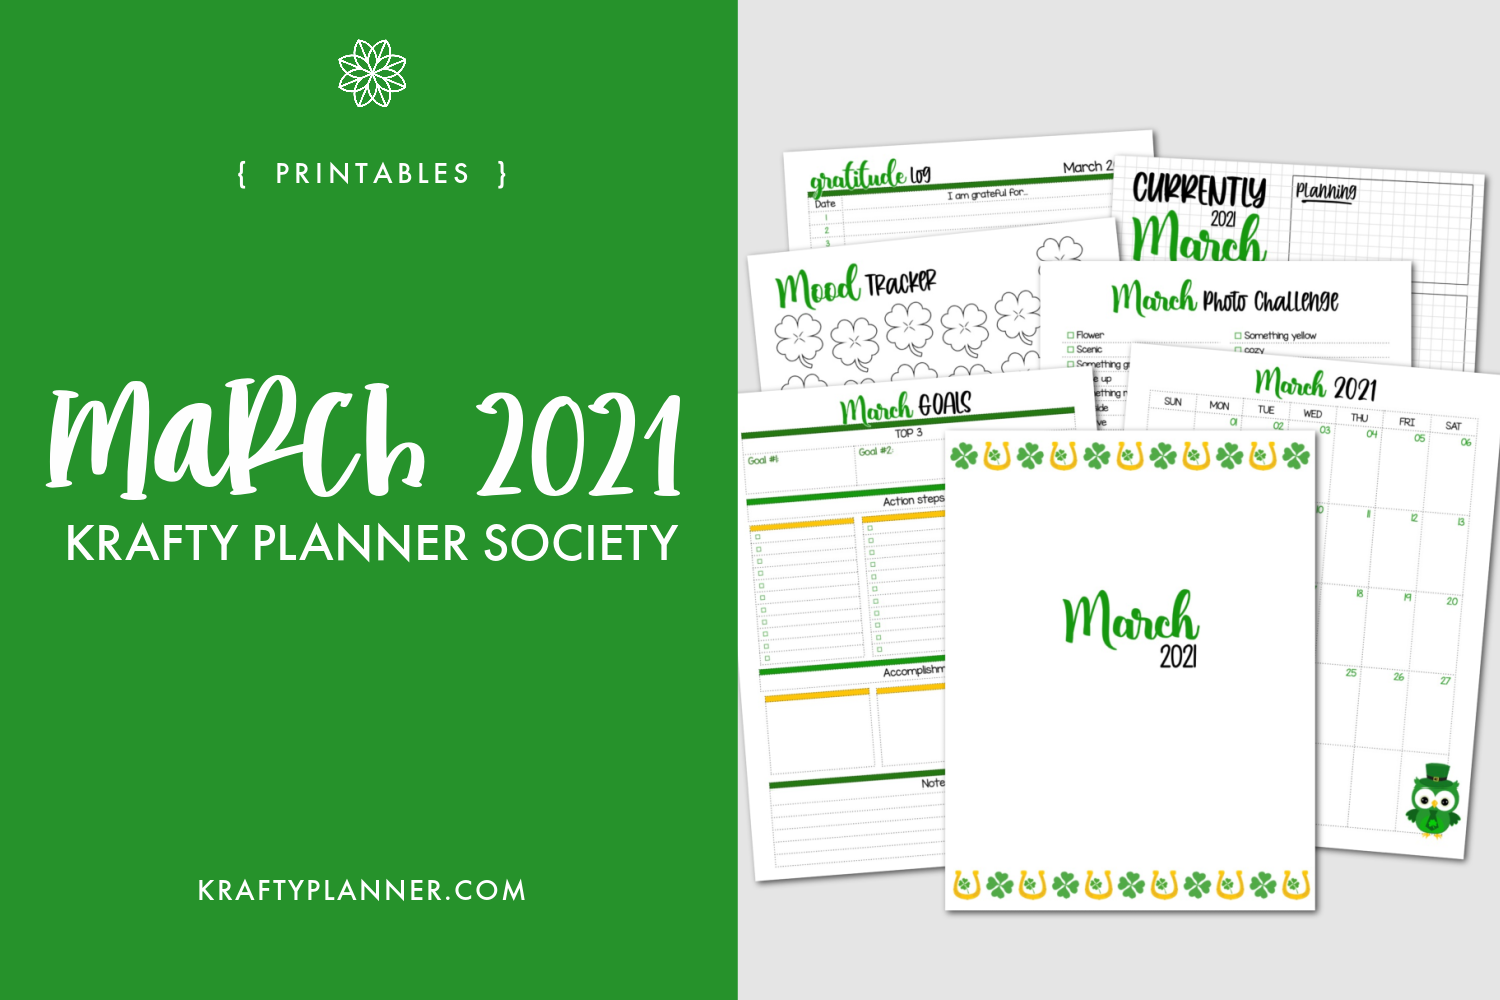 March Krafty Planner Society Printables.png